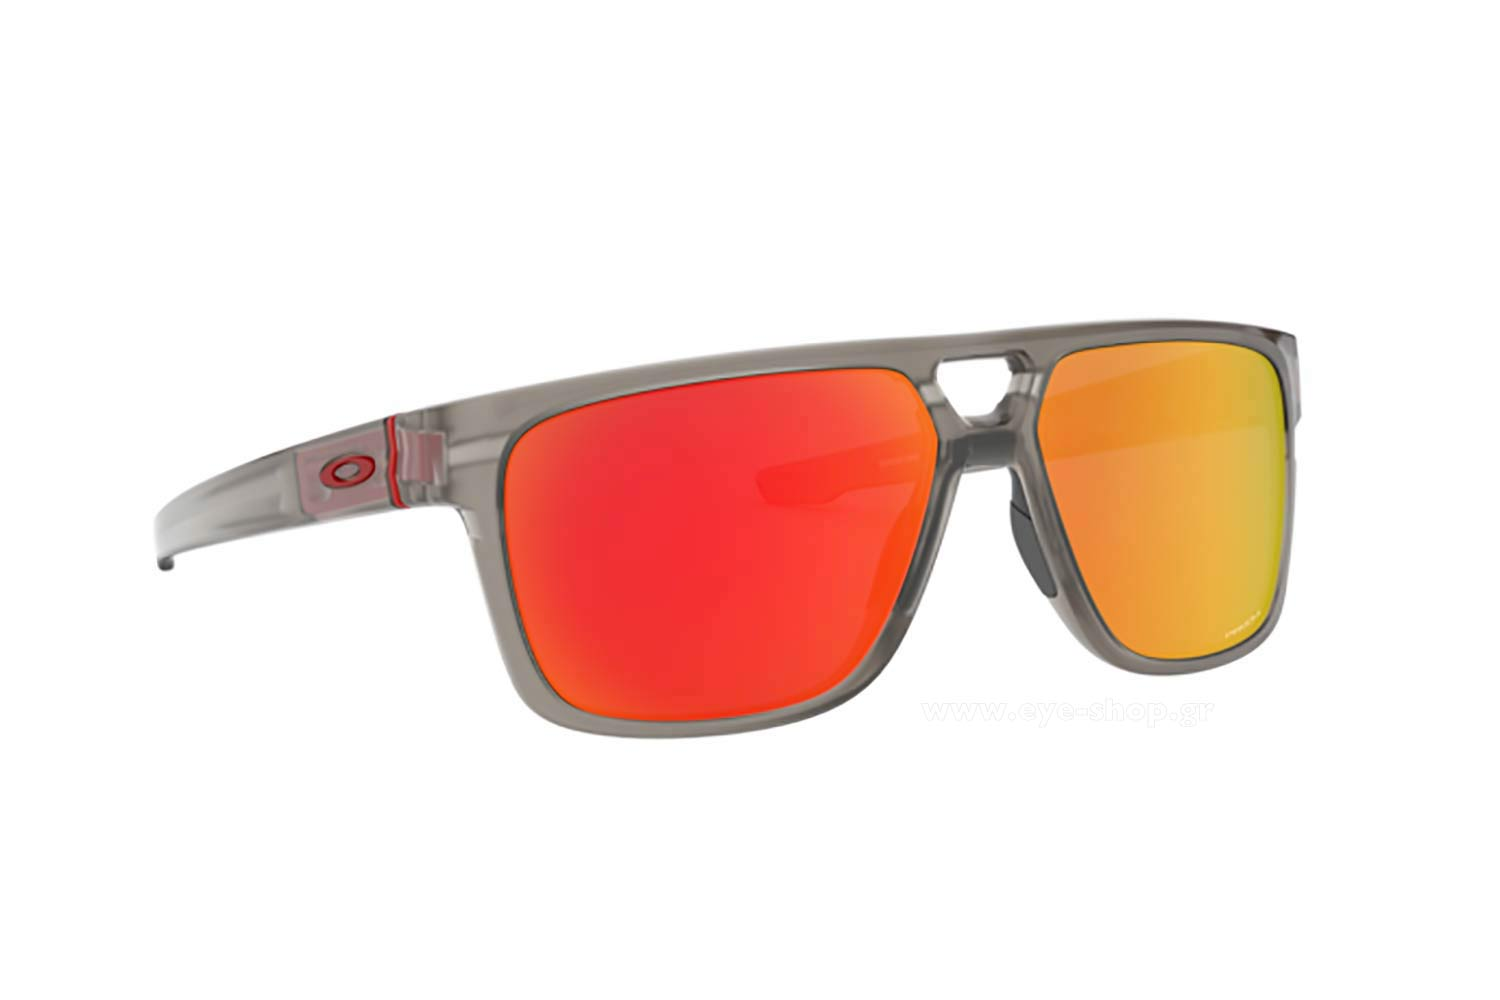 aaacbcbf38c SUNGLASSES Oakley CROSSRANGE PATCH 9382 24